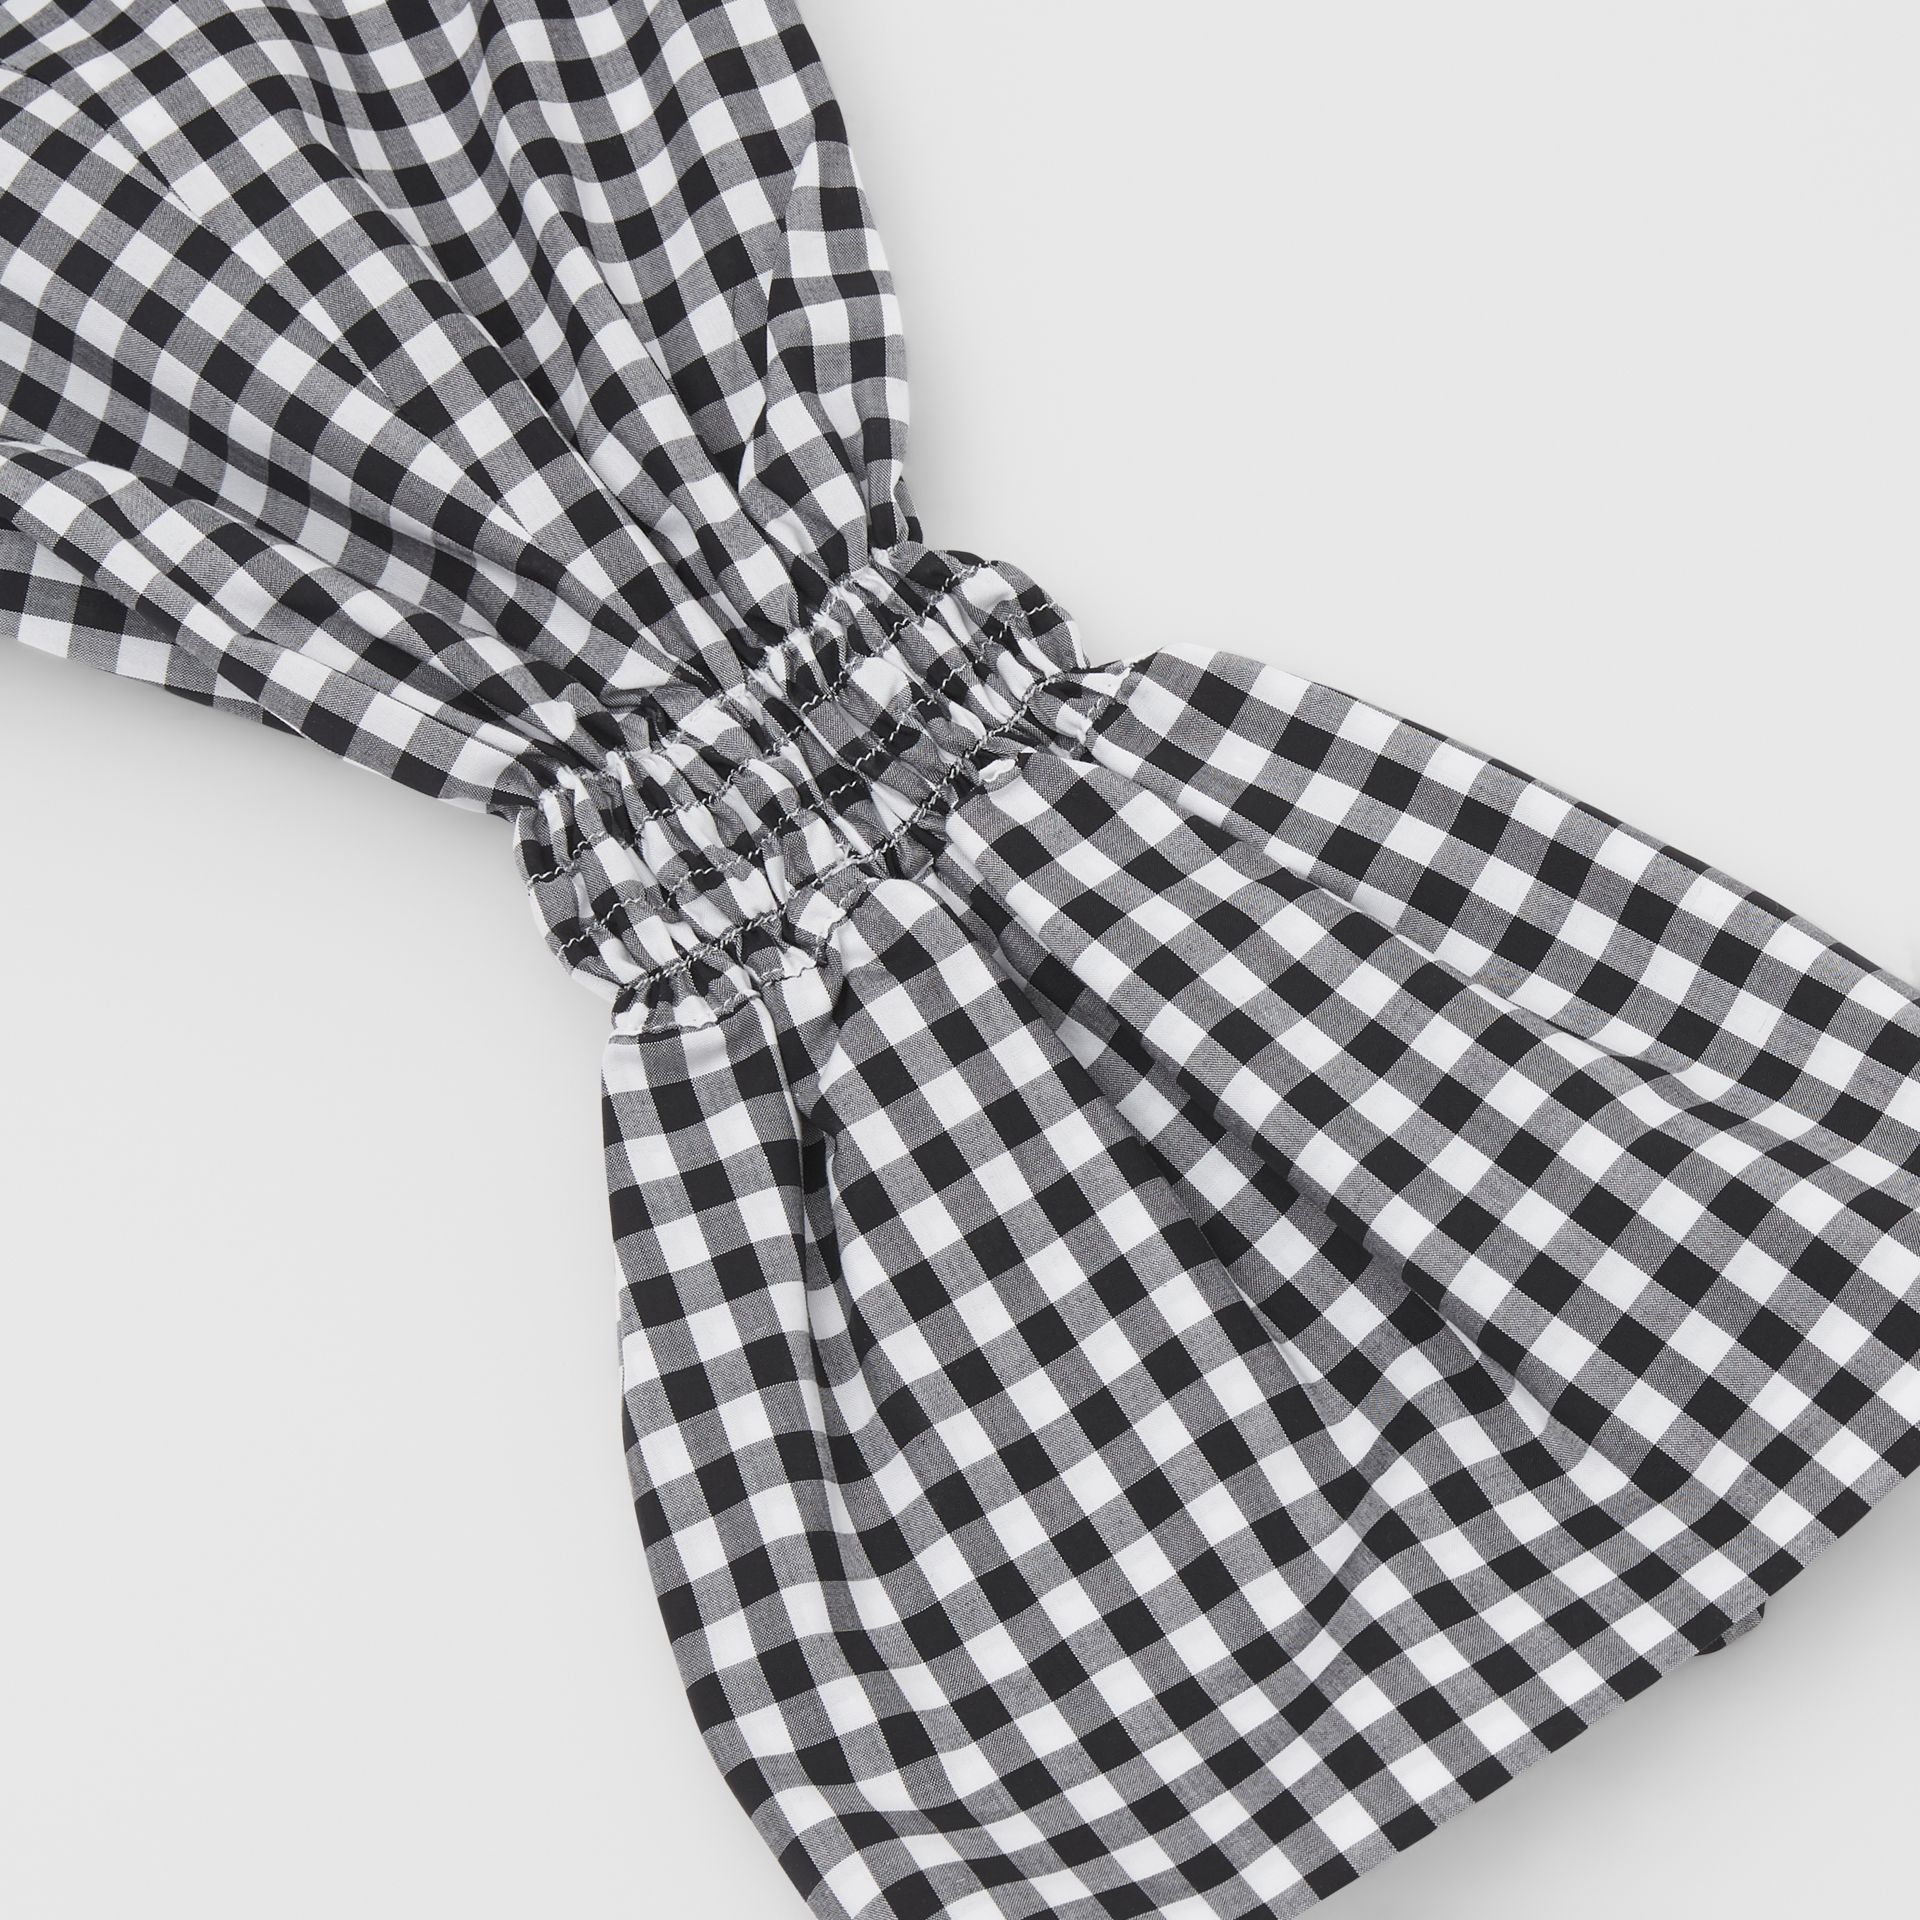 Gingham Cotton Puff Sleeves in Black - Women | Burberry United States - gallery image 1